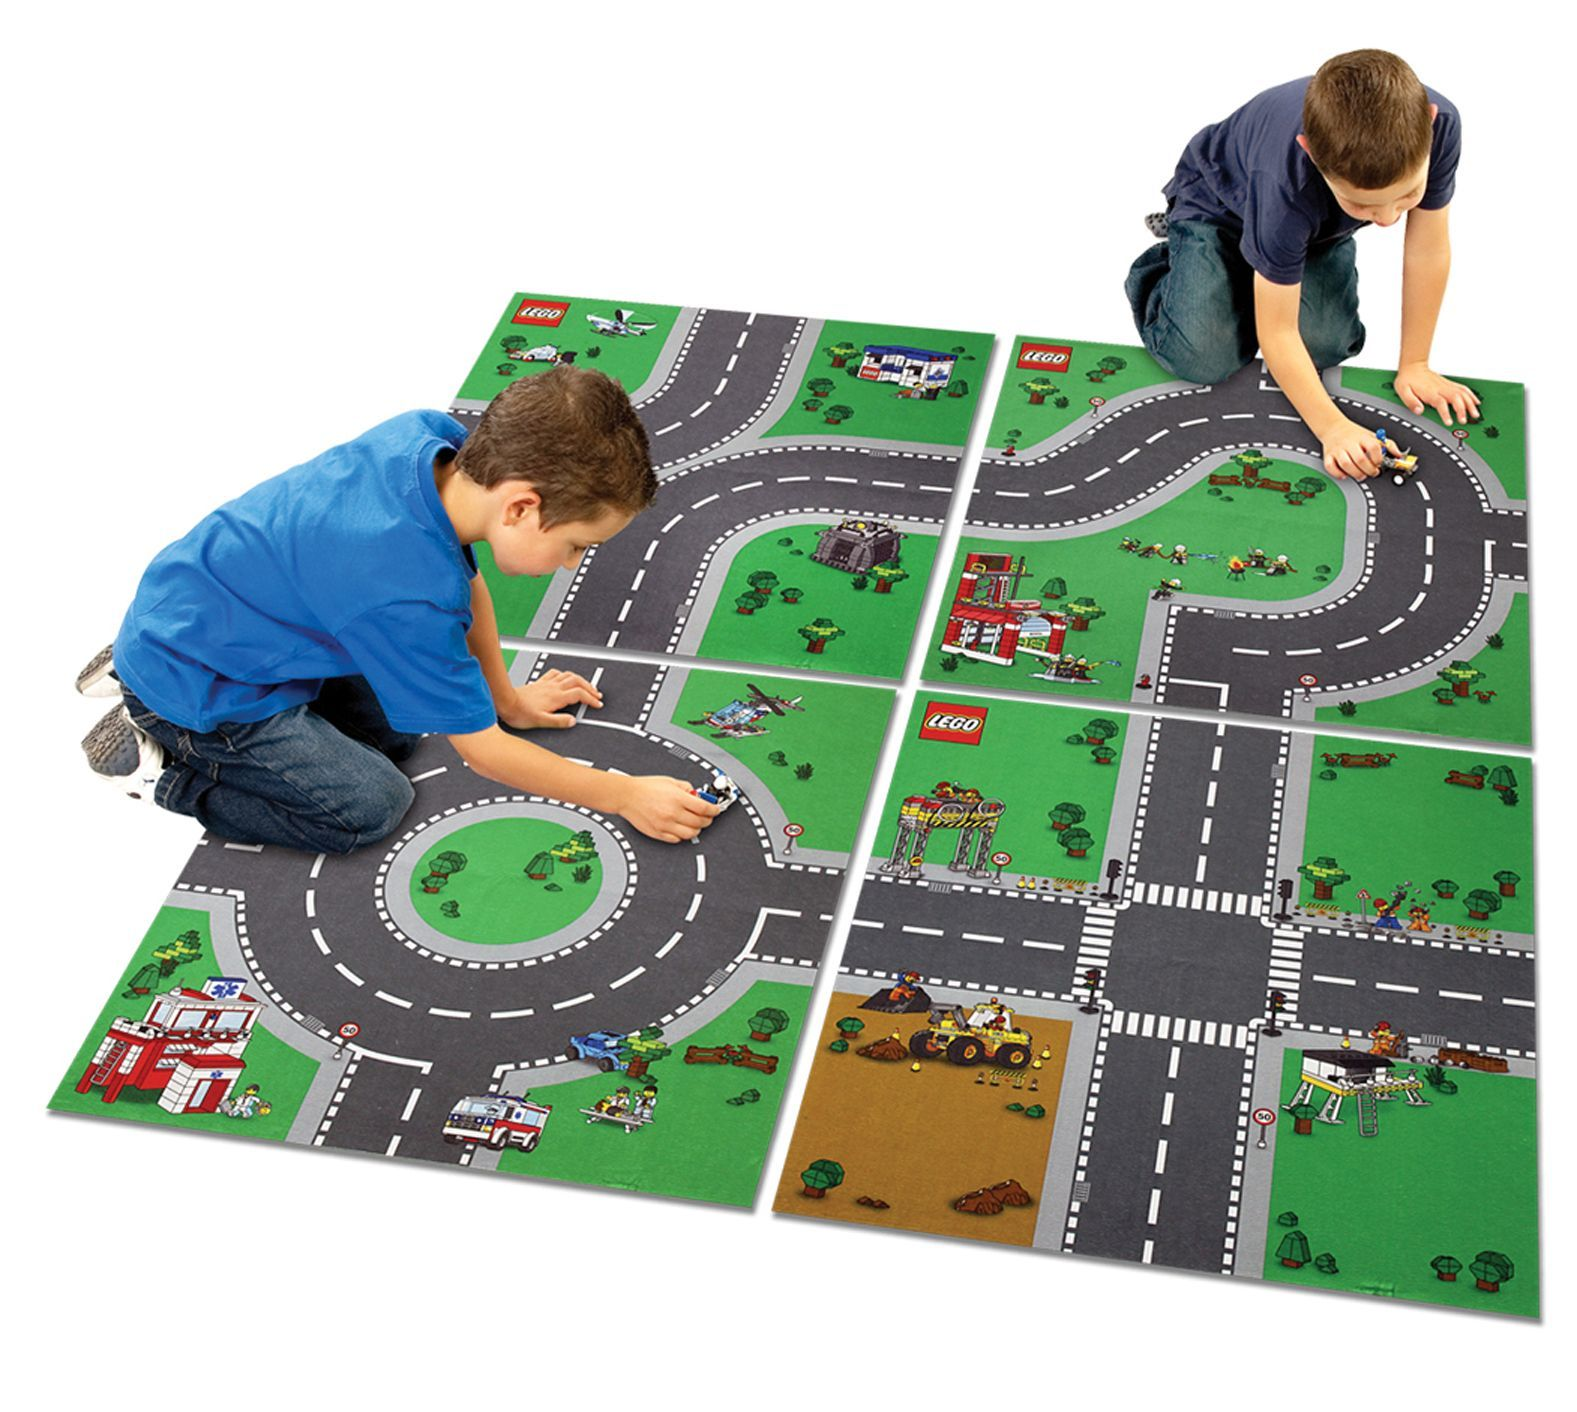 Lego City Playmat 4 Mats We Love Legos Lego City Lego